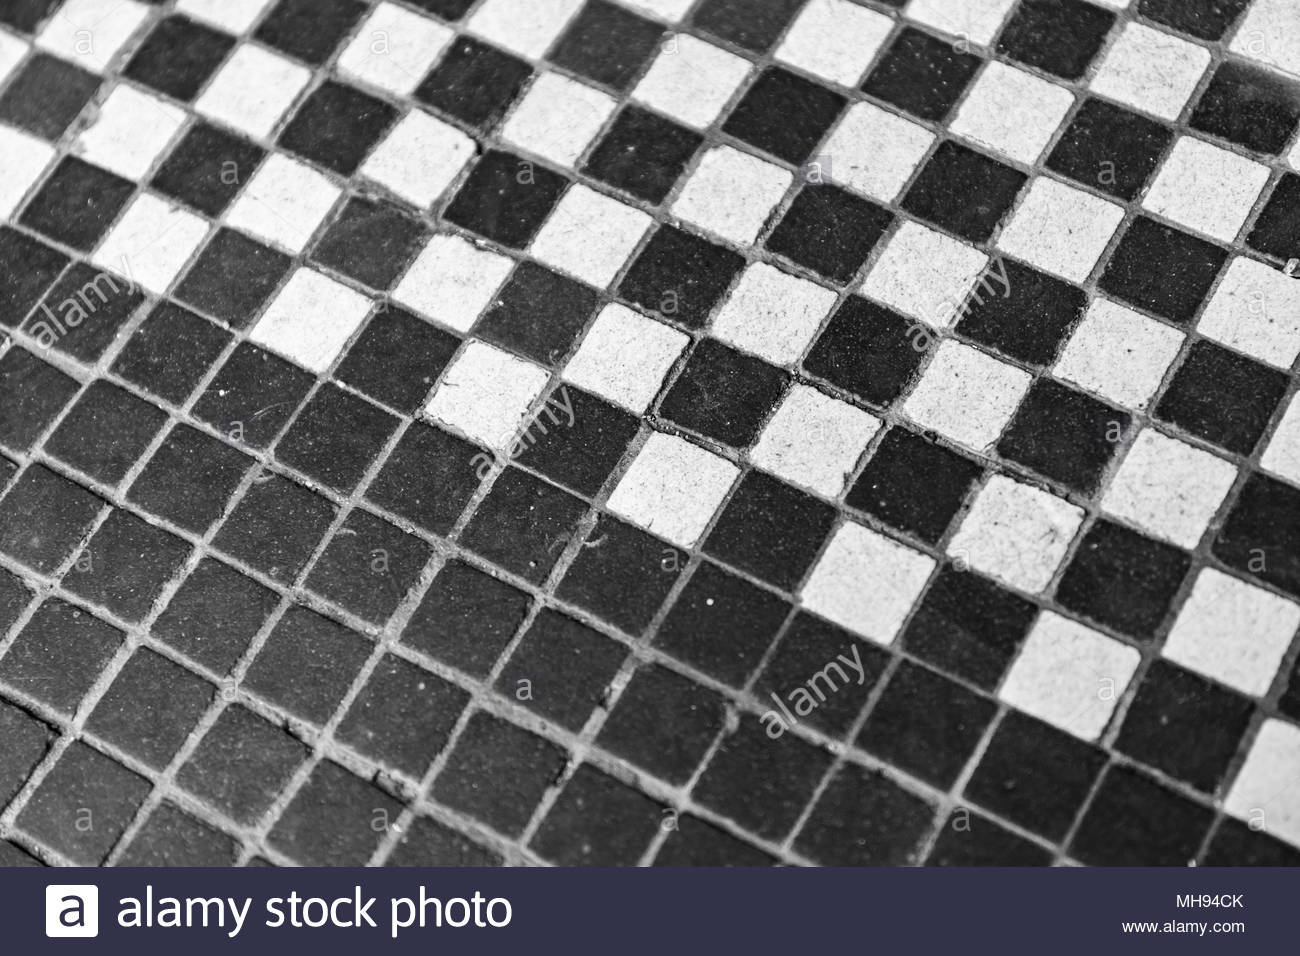 Black And White Tiled Floor Black White Stock Photo 182753891